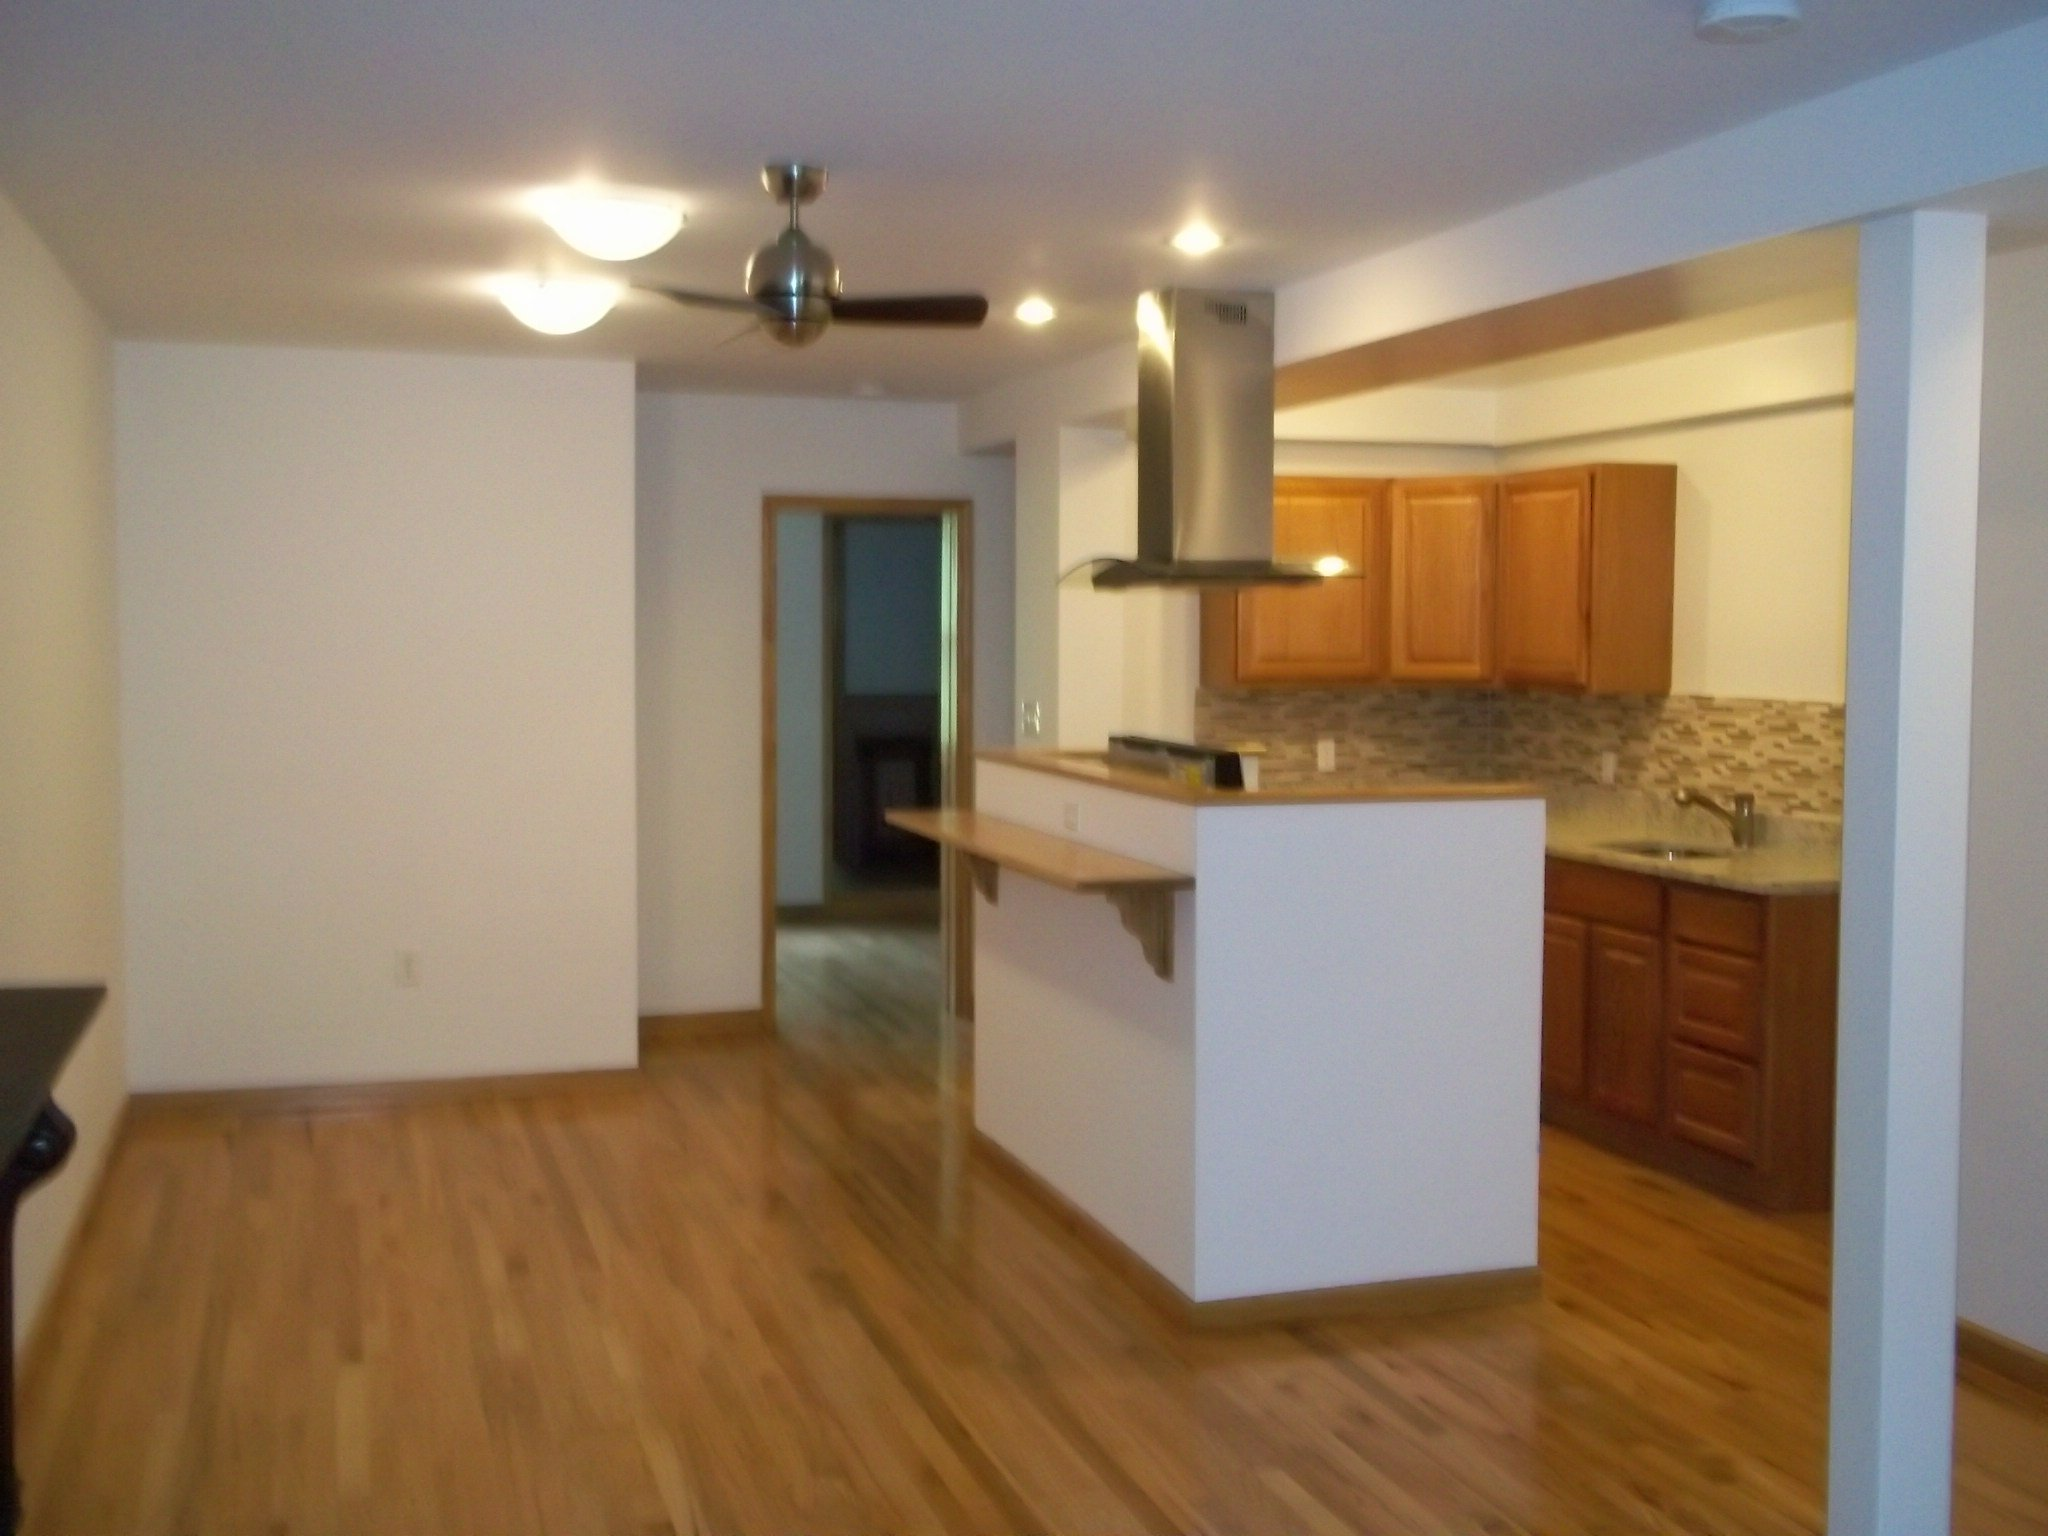 Stuyvesant heights 1 bedroom apartment for rent brooklyn for 1 bedroom apartments